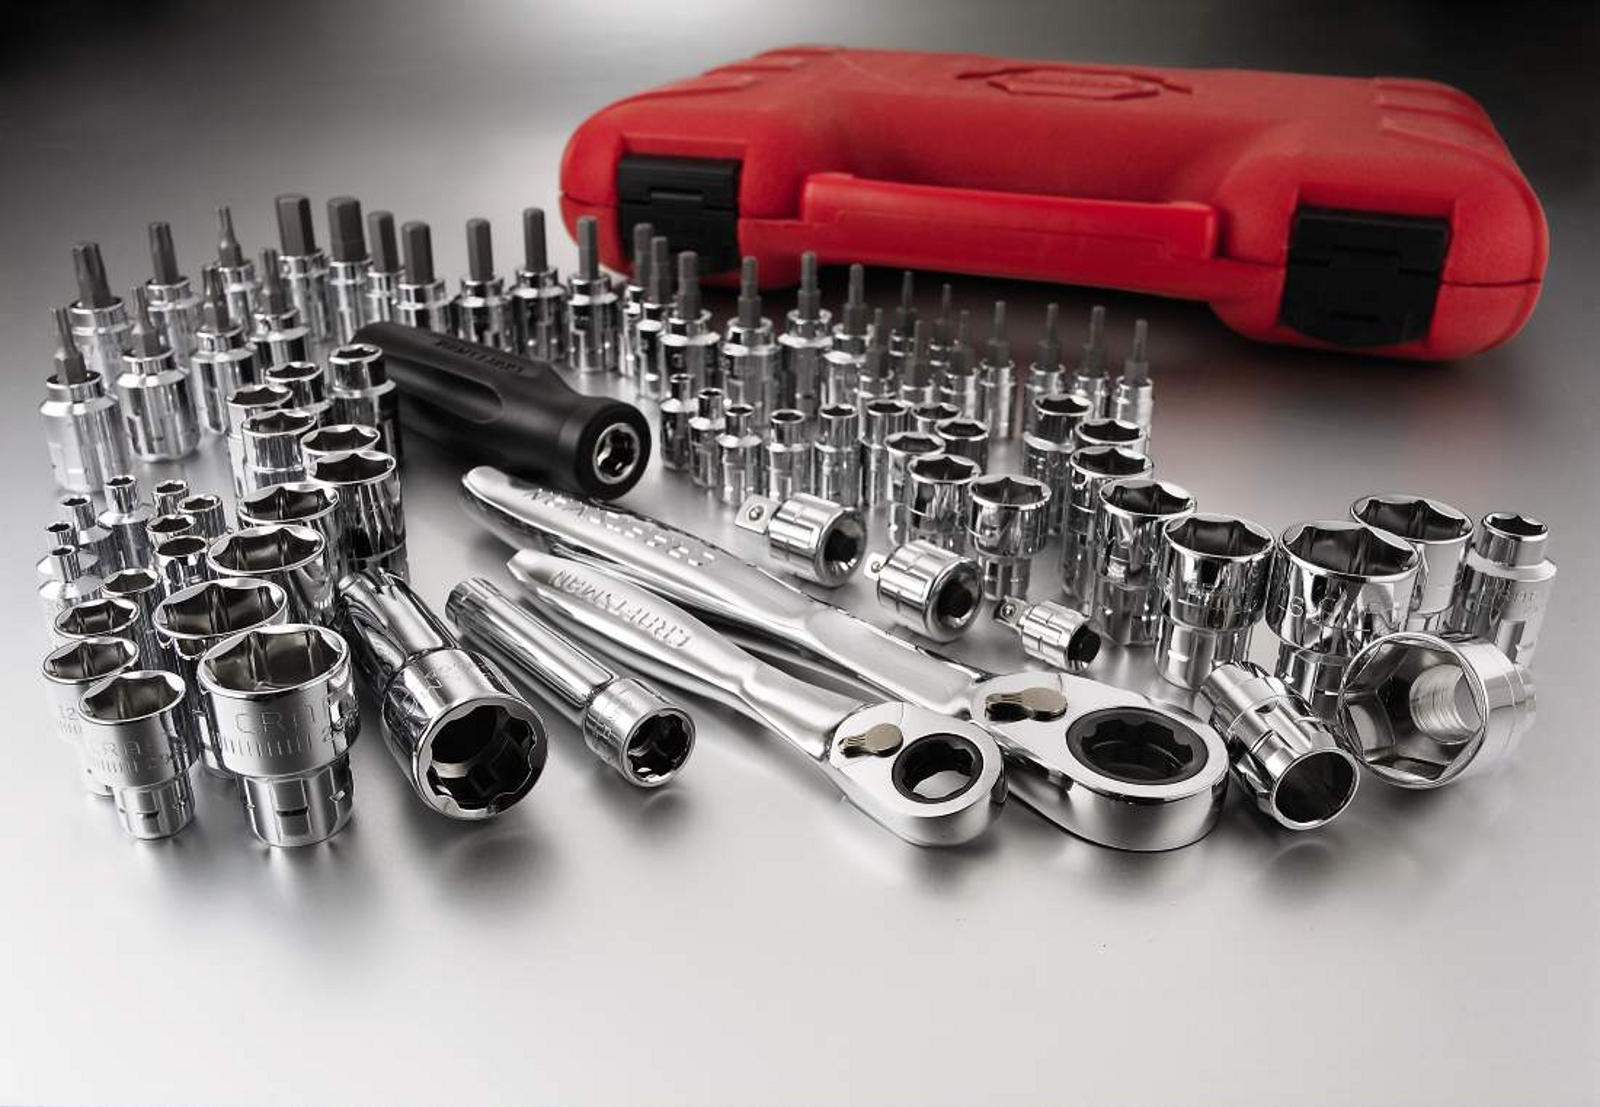 Craftsman 80pc Max Axess 1/4 & 3/8-in. Dr. Socket Wrench Set